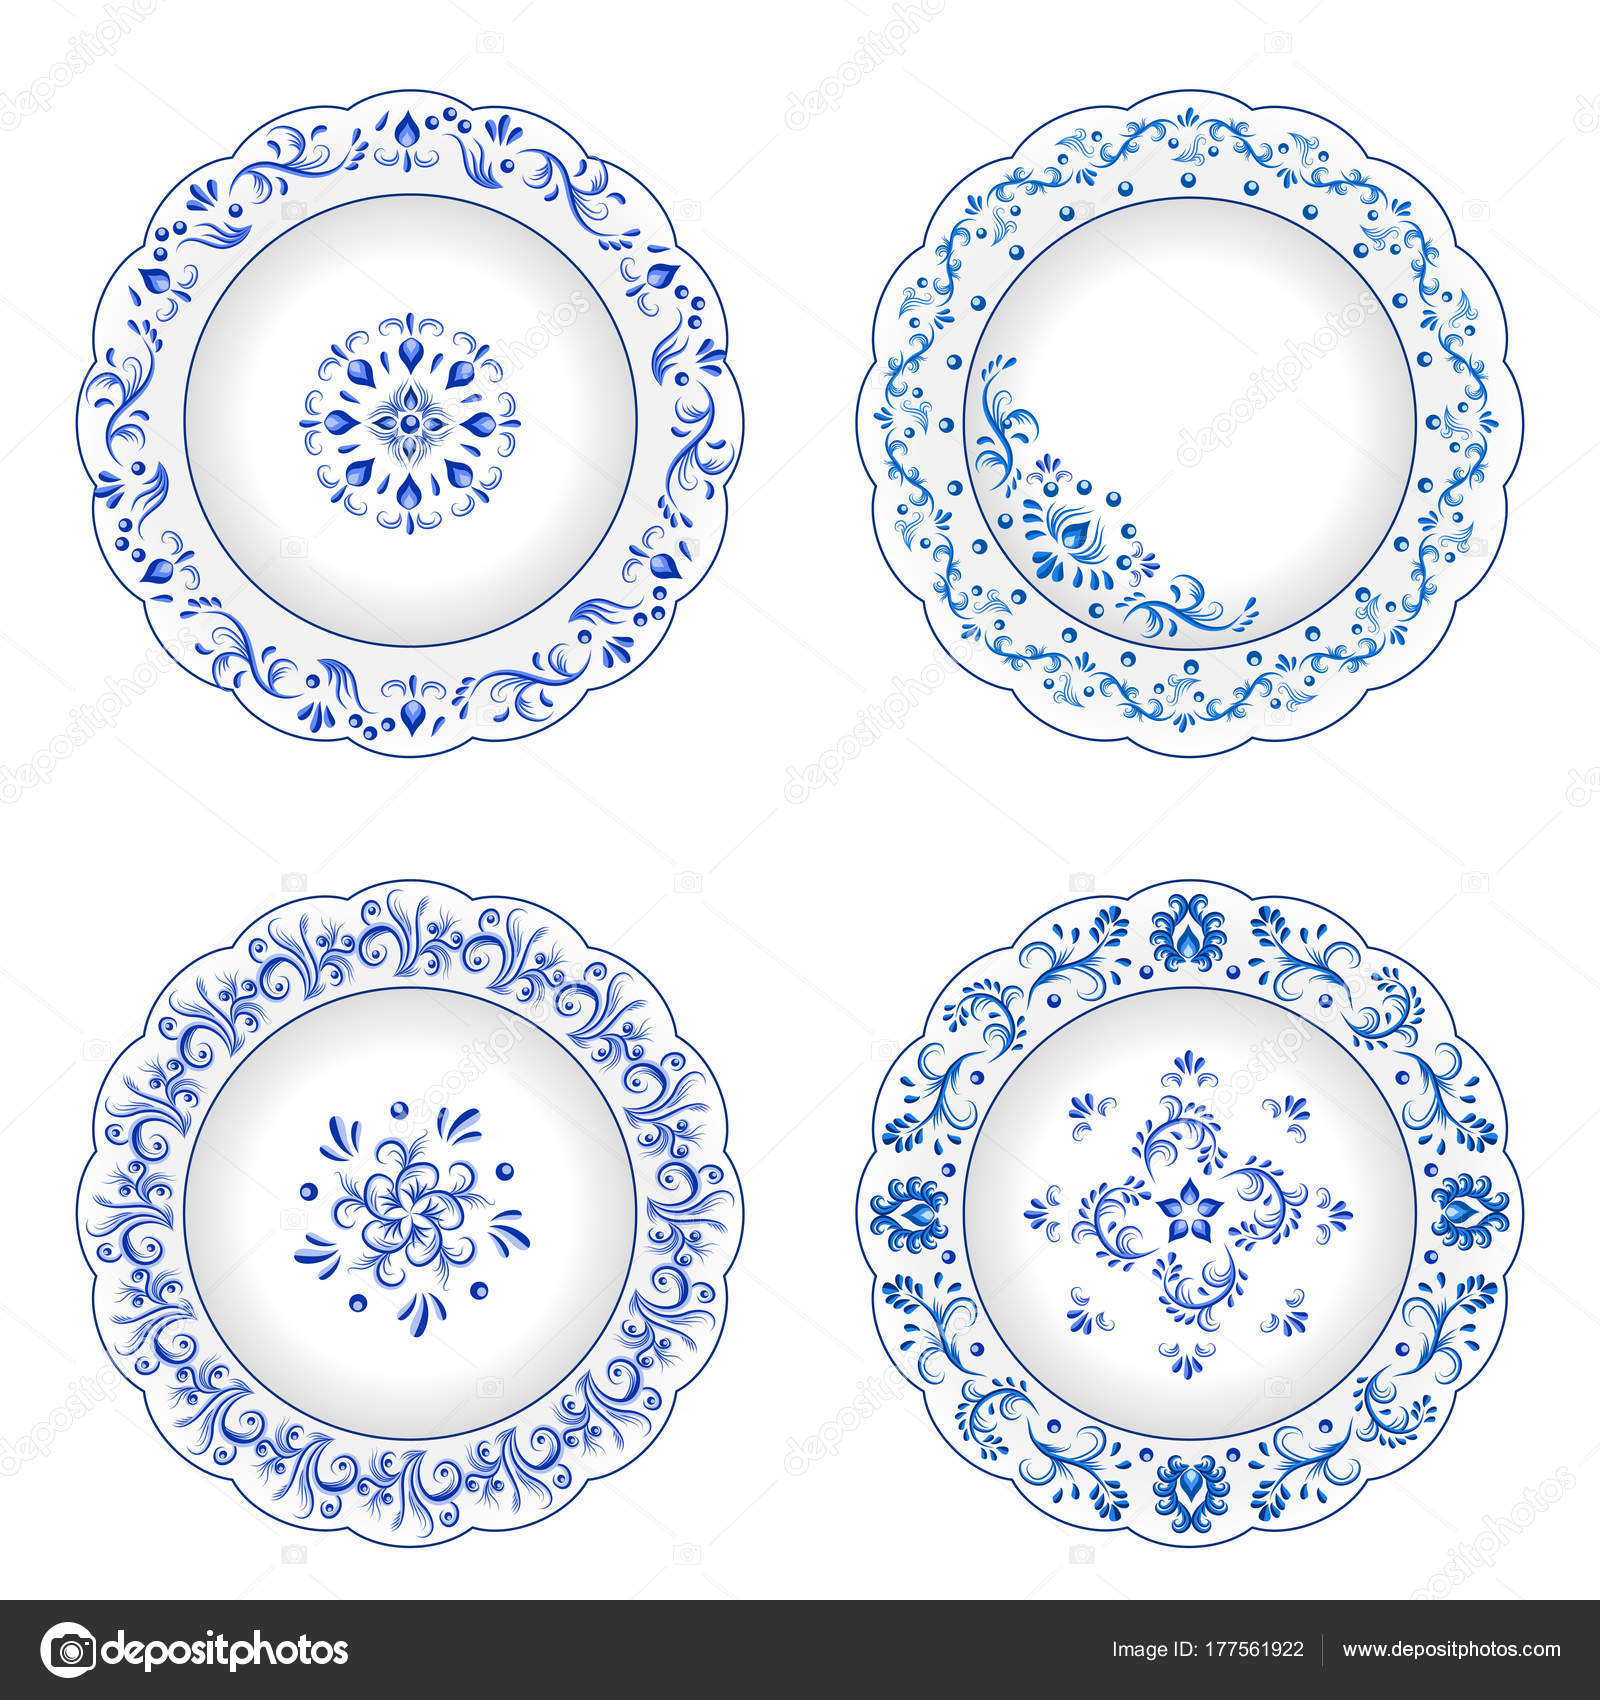 Set of decorative porcelain plates ornate with blue floral ornament pattern in traditional Russian style Gzhel with vintage elements.  sc 1 st  Depositphotos & Set of decorative porcelain plates ornate in traditional Russia ...